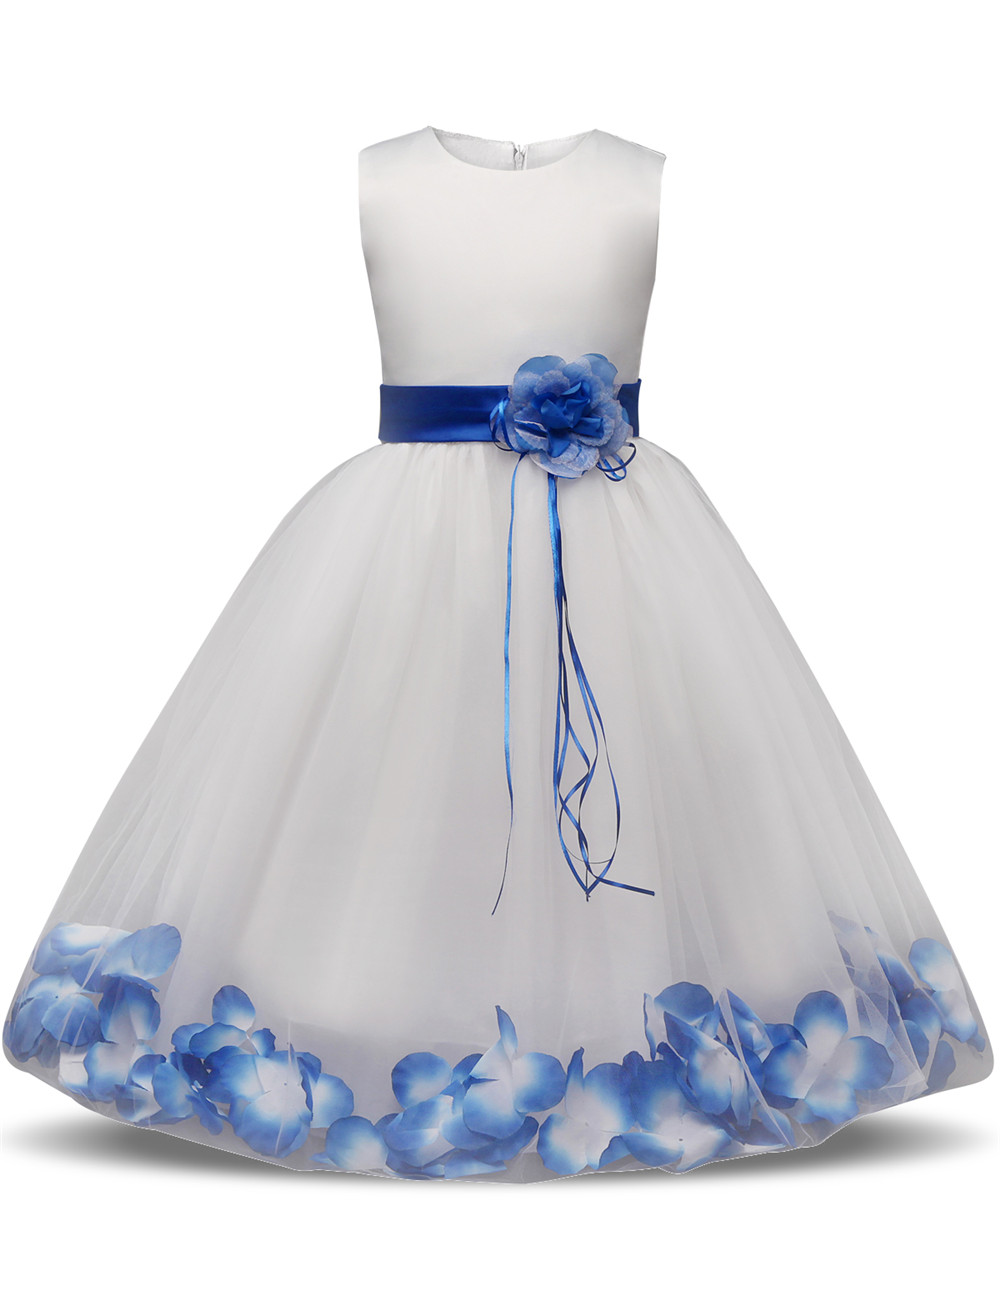 Fancy Flower Children\'s Princess Dresses Girl Kid Ceremony Party ...